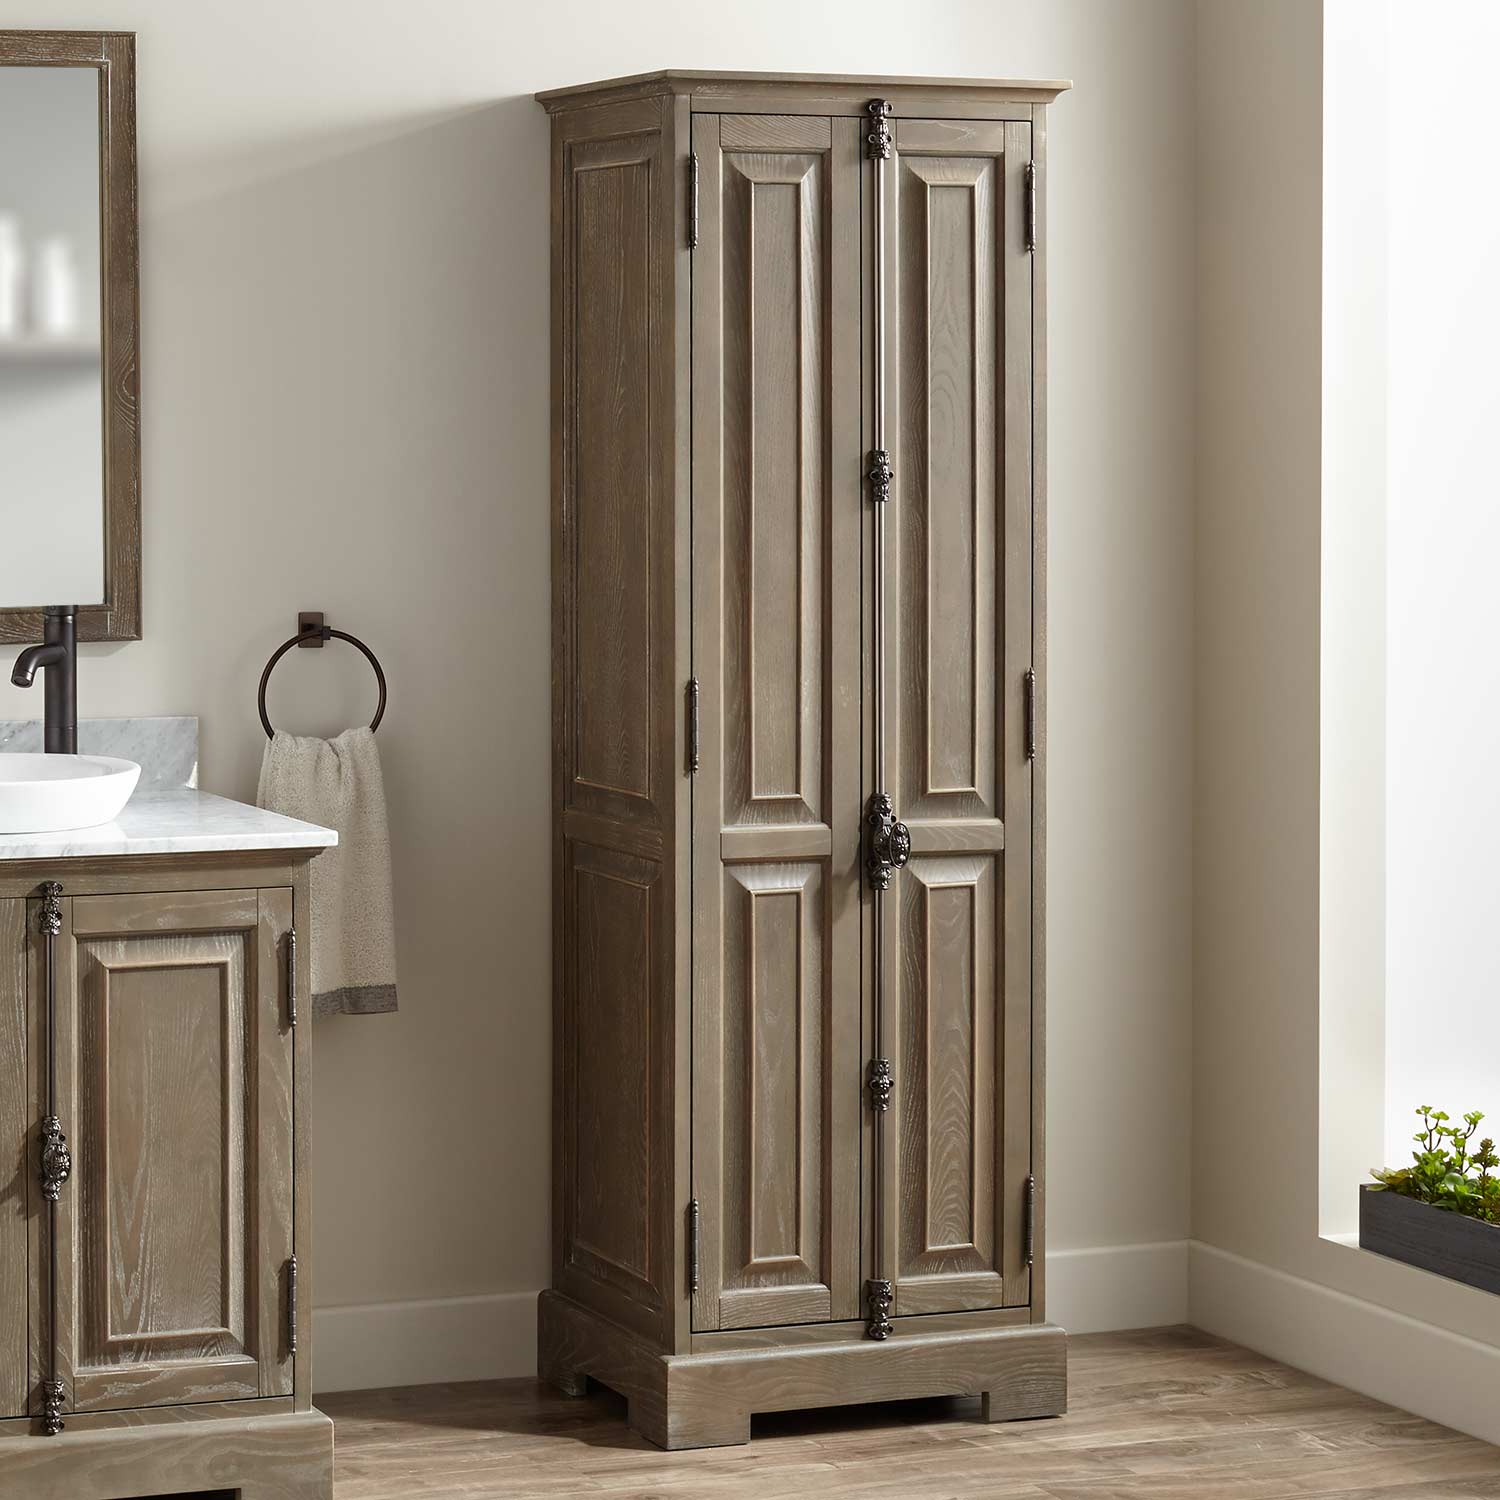 Rustic Bathroom Storage Cabinet Renacci For Home From with regard to dimensions 1500 X 1500